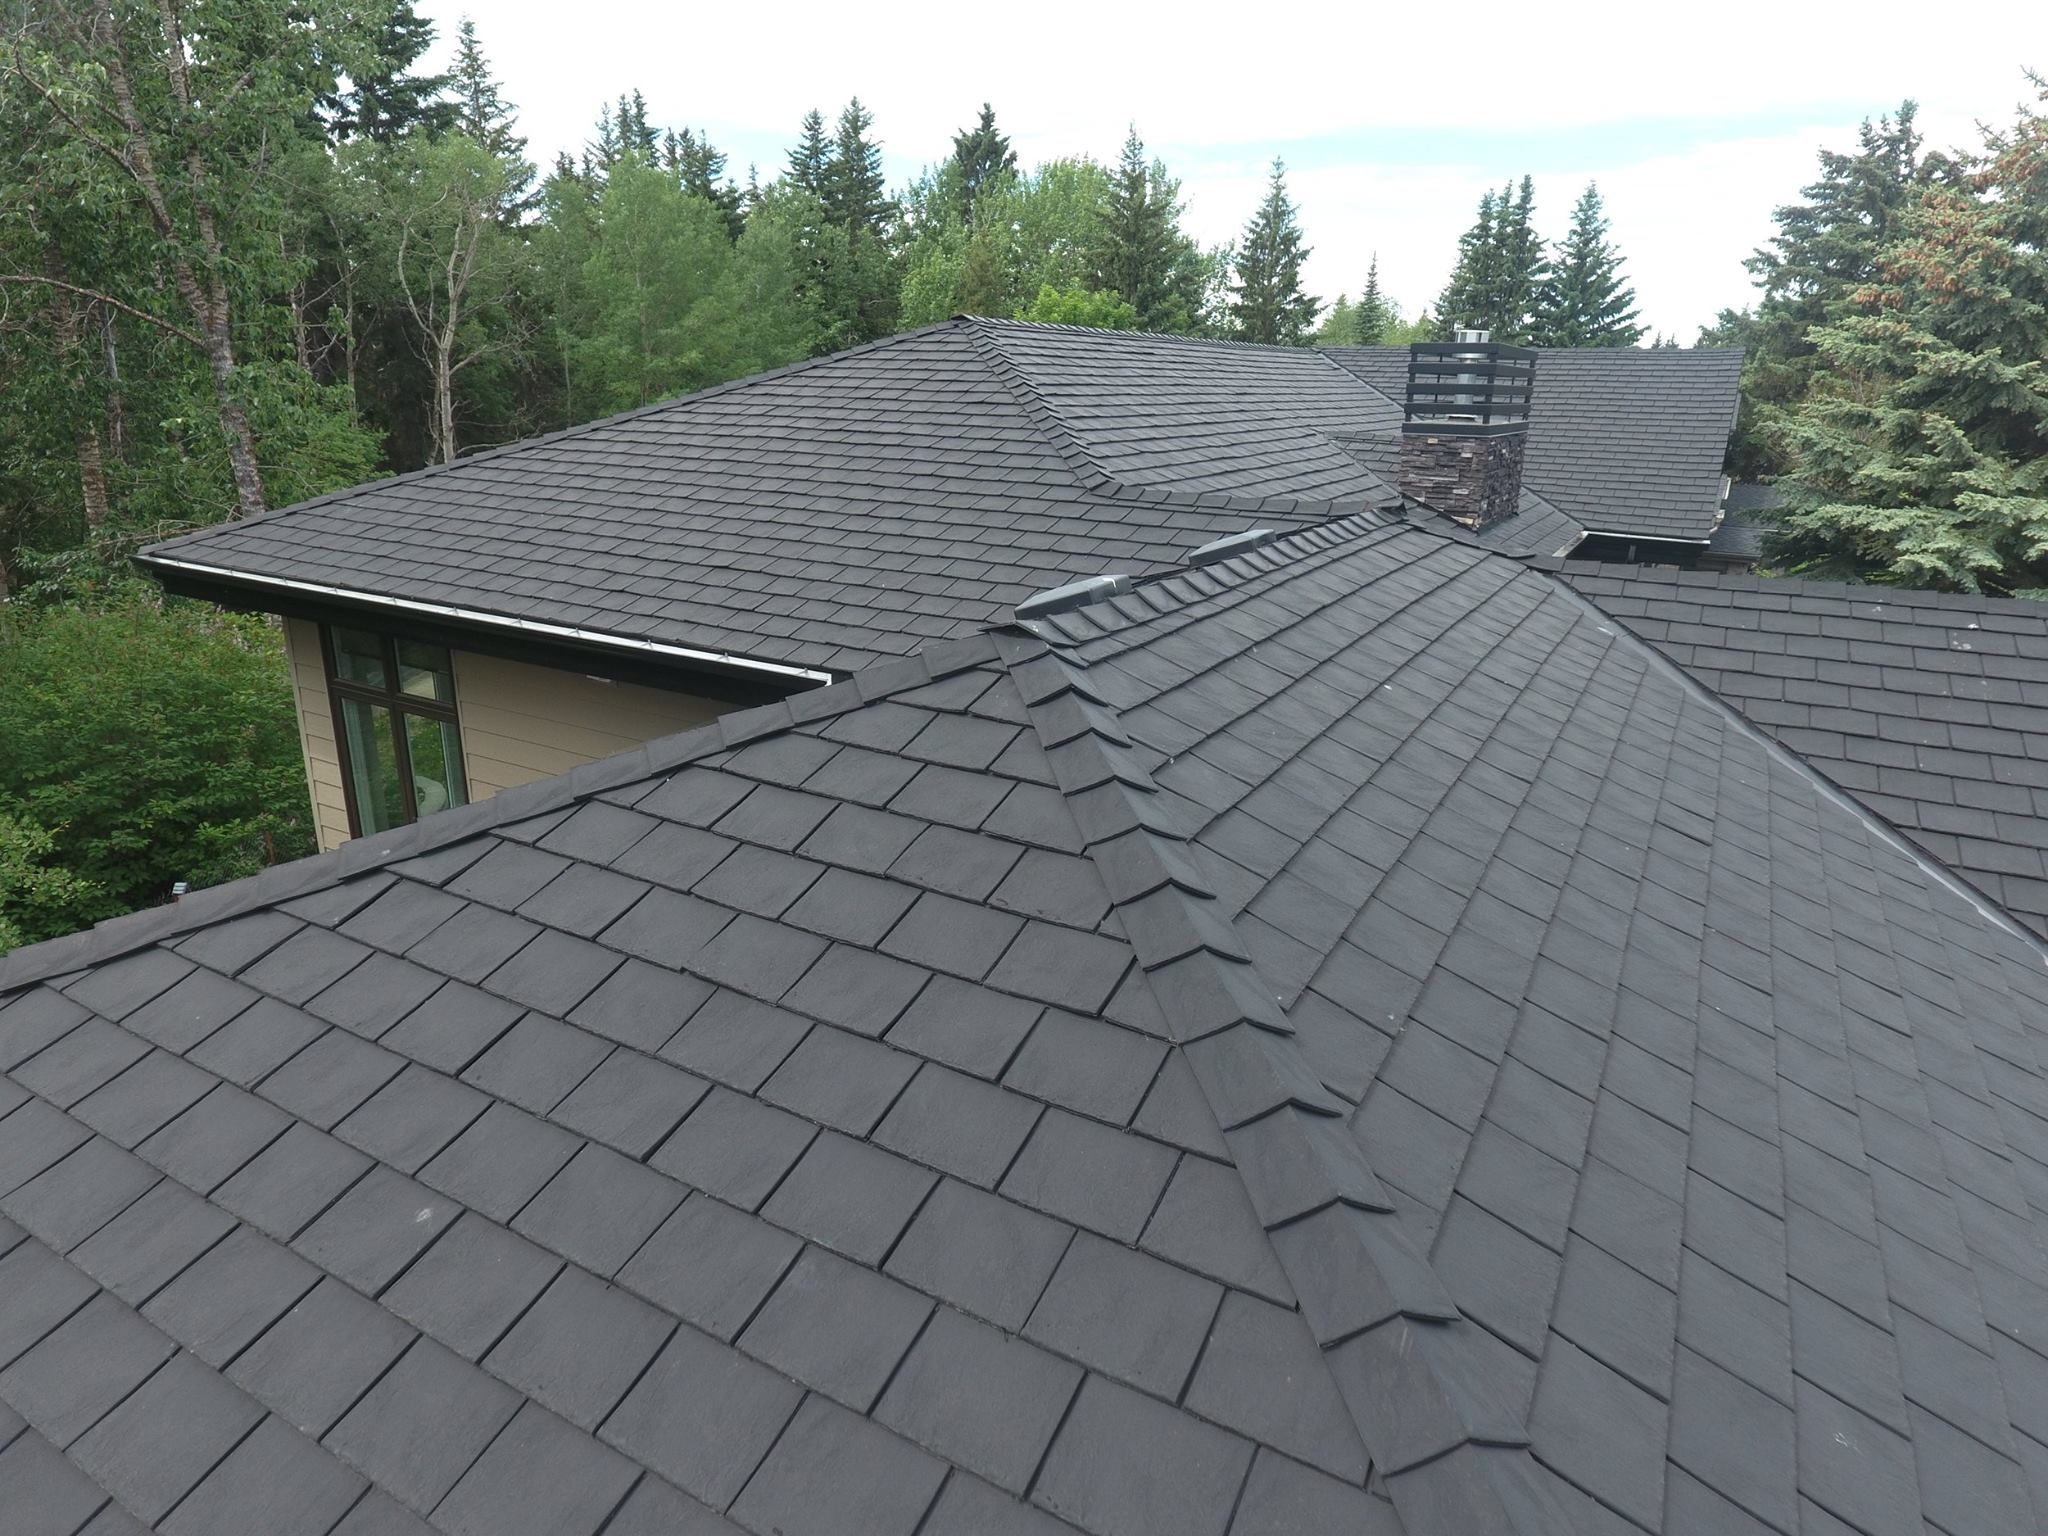 Heritage Slate In Black Slate Black Roof Roofing Roofingmaterial Rubber Lifetimewarranty Authentic Shin Roofing Rubber Roofing Material Rubber Roofing